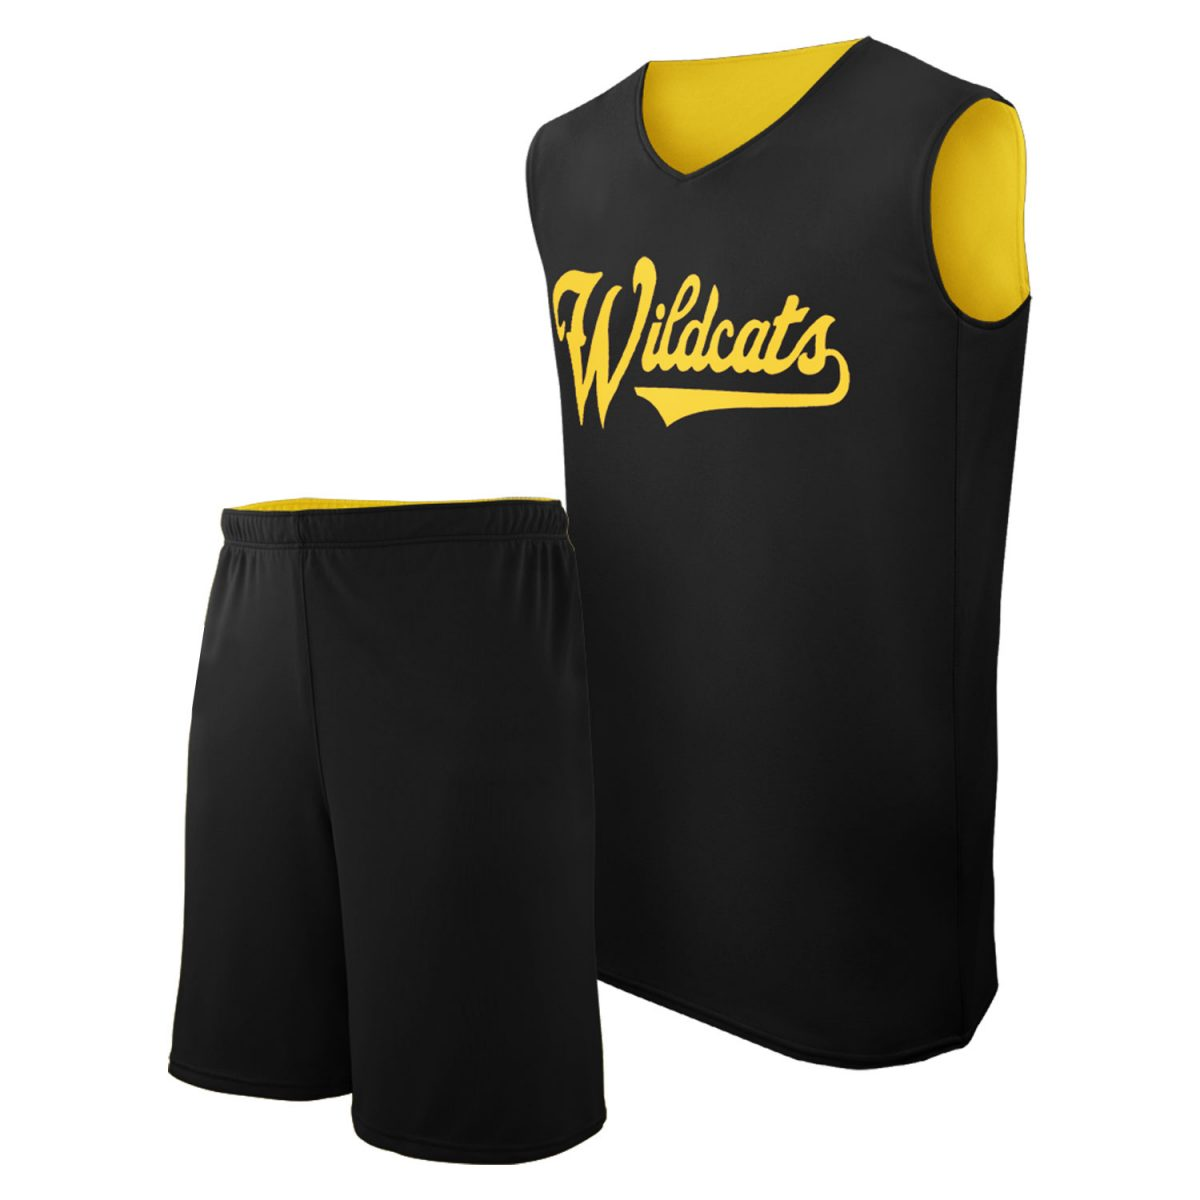 Boys Basketball Uniforms Manufacturers in Sweden